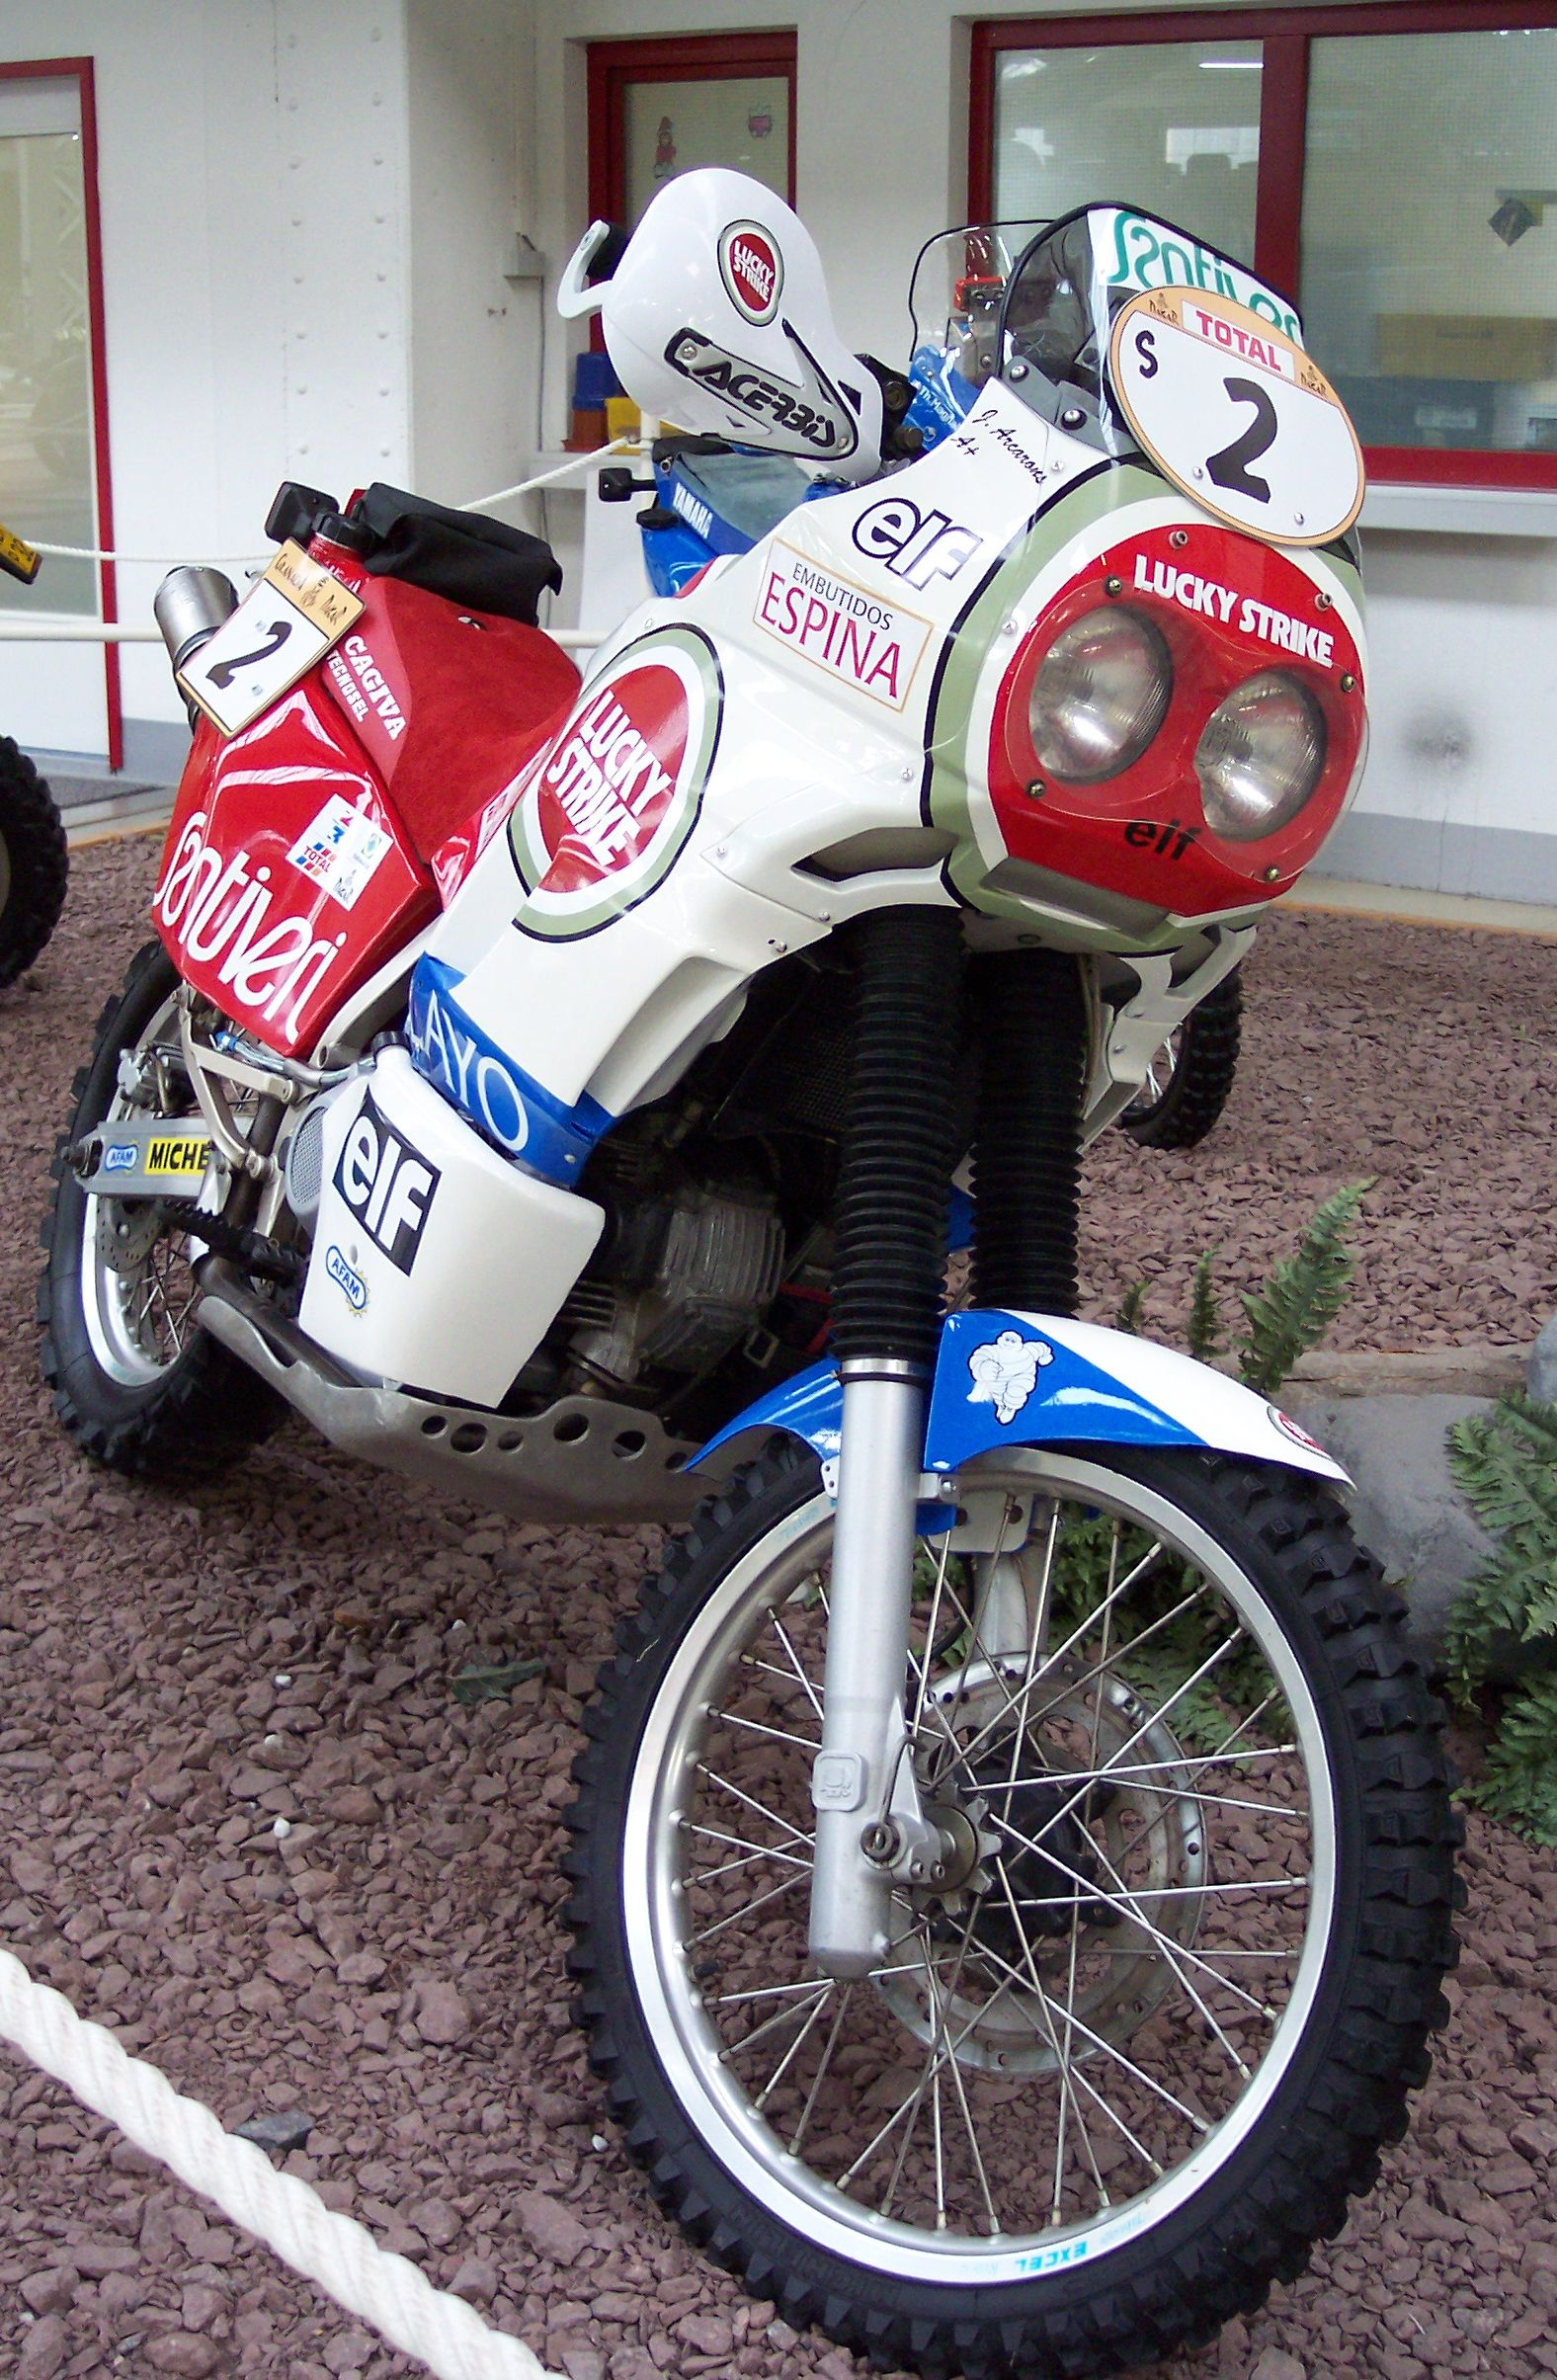 Cagiva SX 250 1983 images #67987